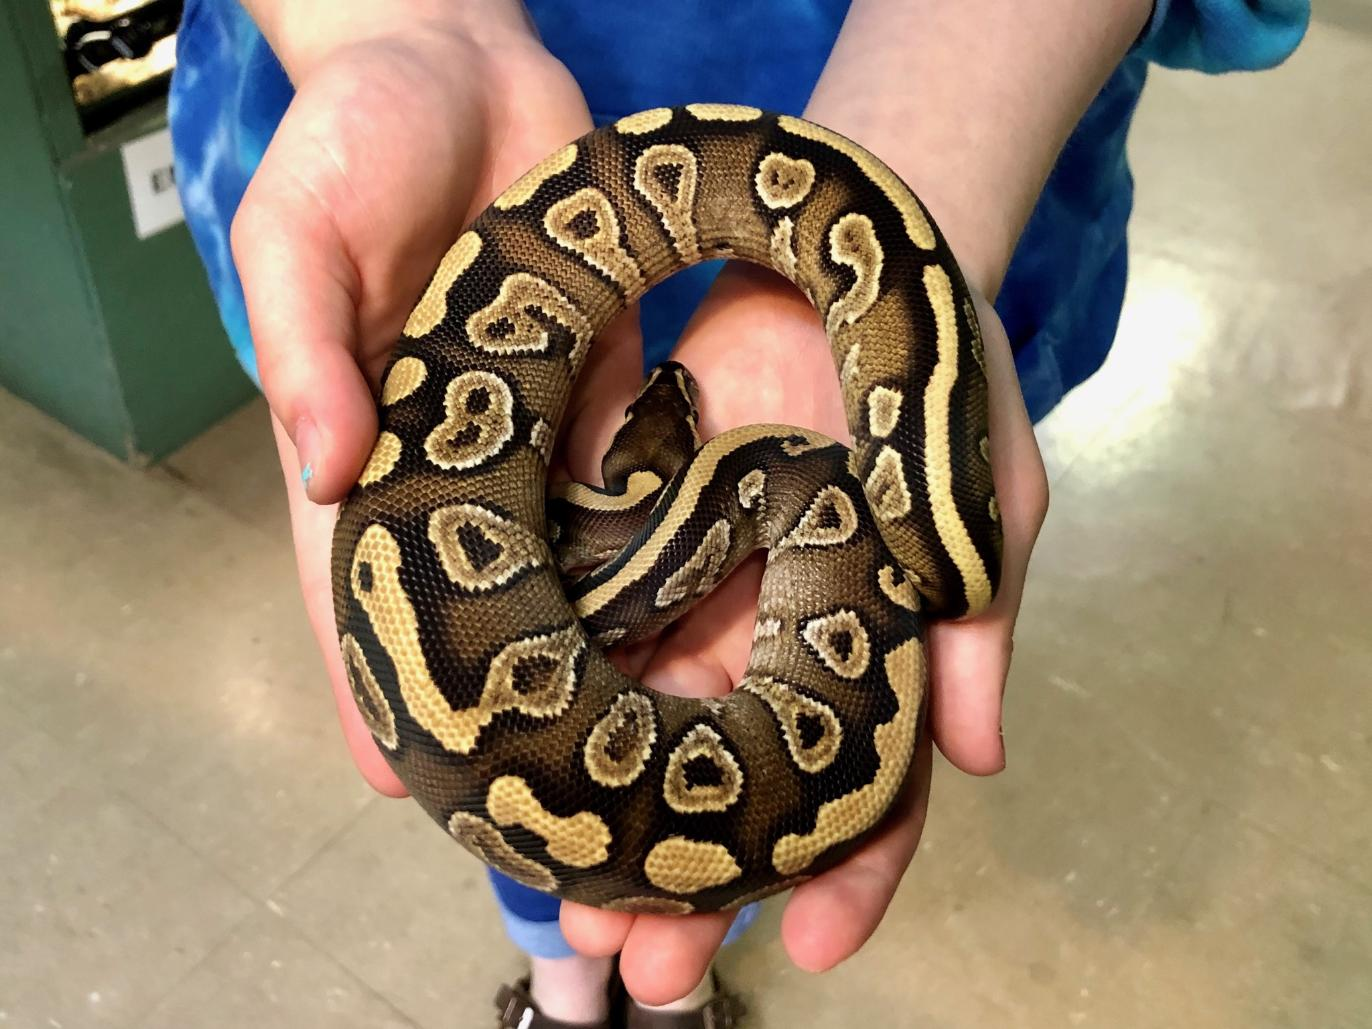 z OUT OF STOCK - MOJAVE YELLOWBELLY BALL PYTHON - 2019 MALE, Python regius